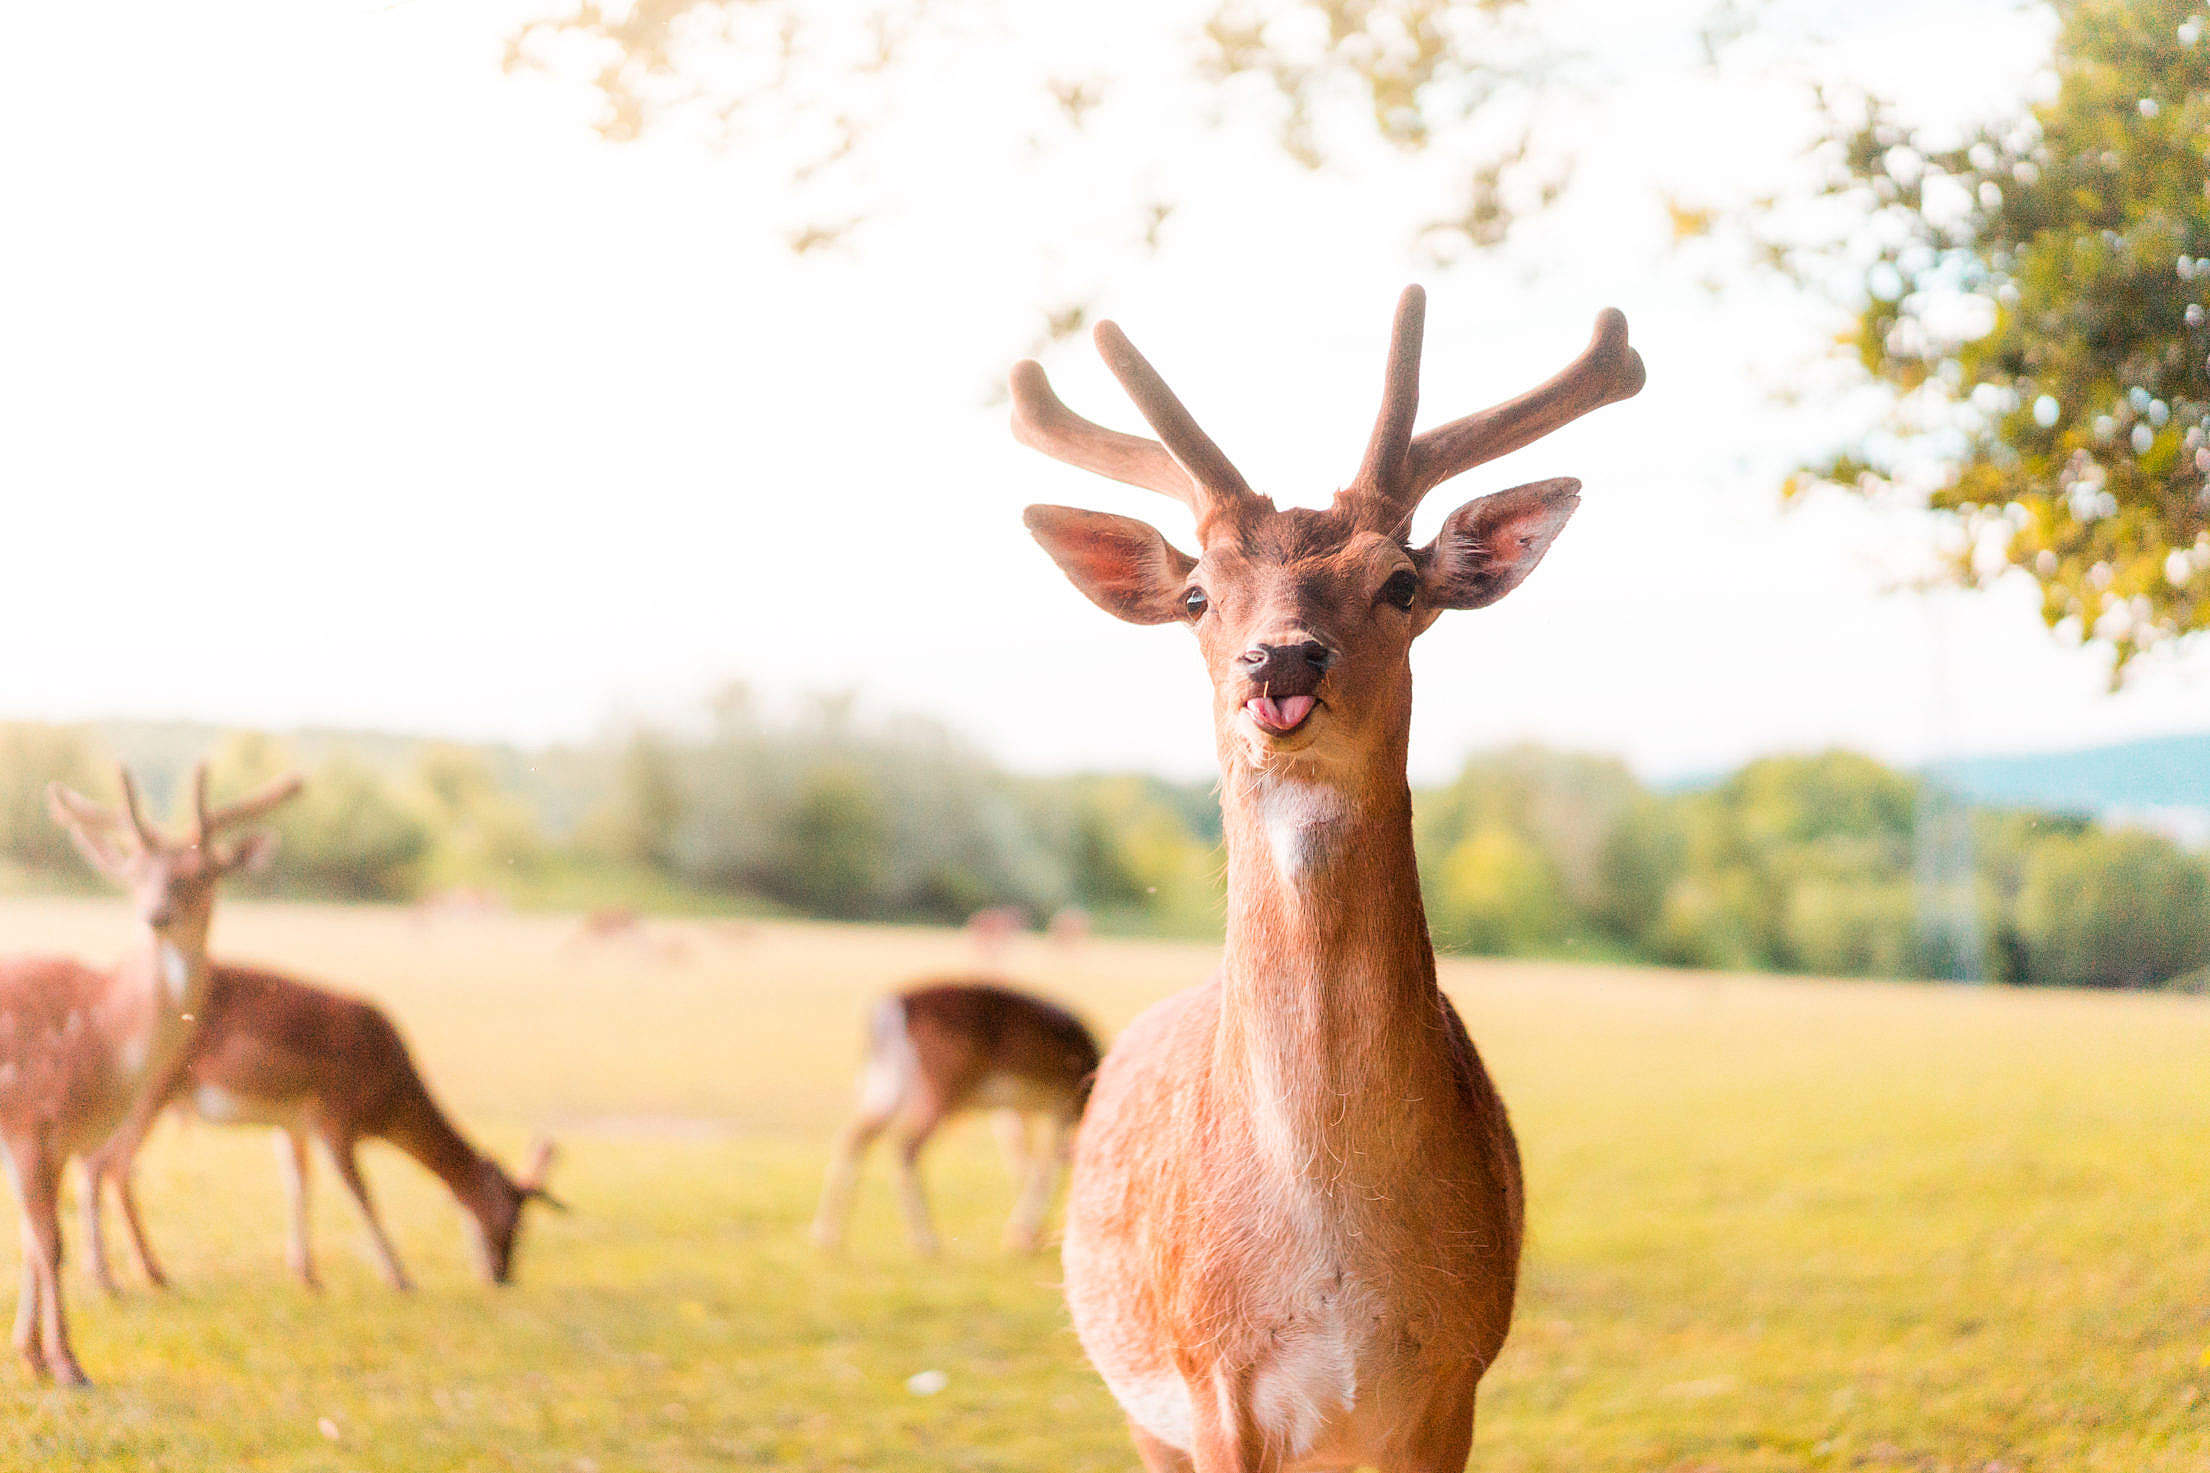 Funny Portrait of Fallow Deer Sticking Out The Tongue Free Stock Photo